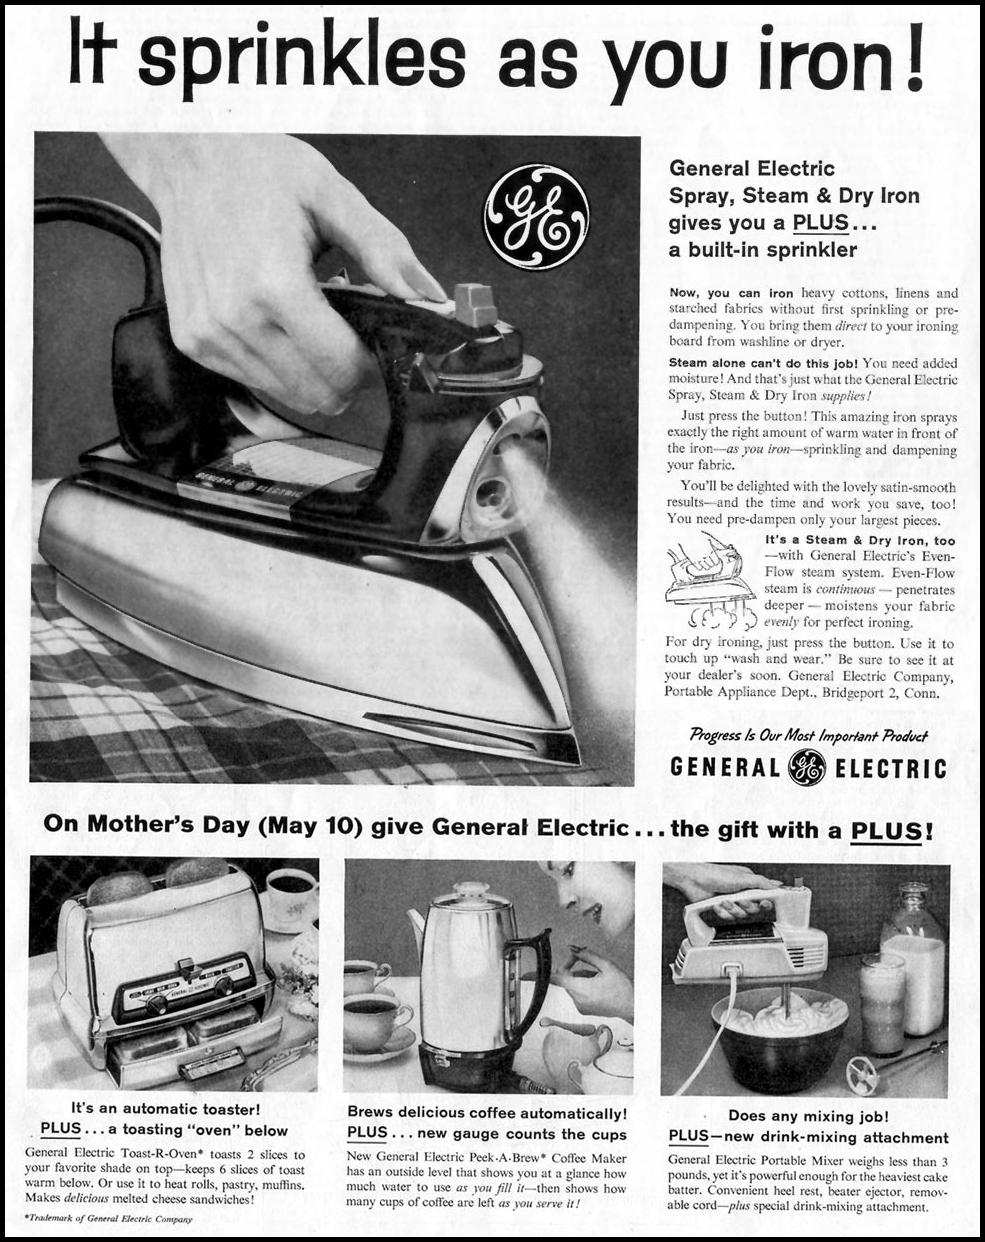 G. E. SPRAY, STEAM & DRY IRON SATURDAY EVENING POST 05/02/1959 p. 75